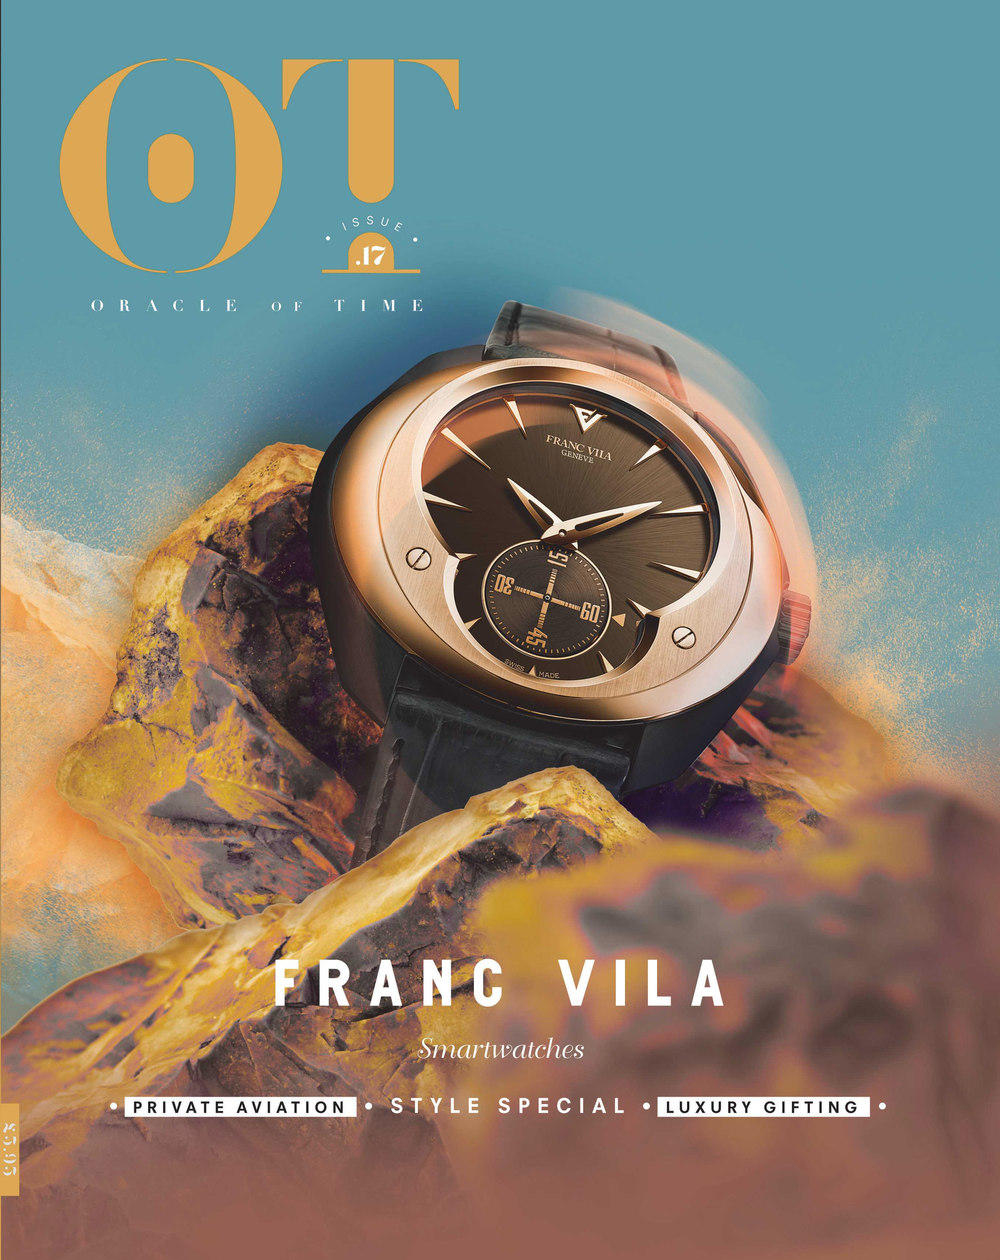 Oracle Time Issue 17